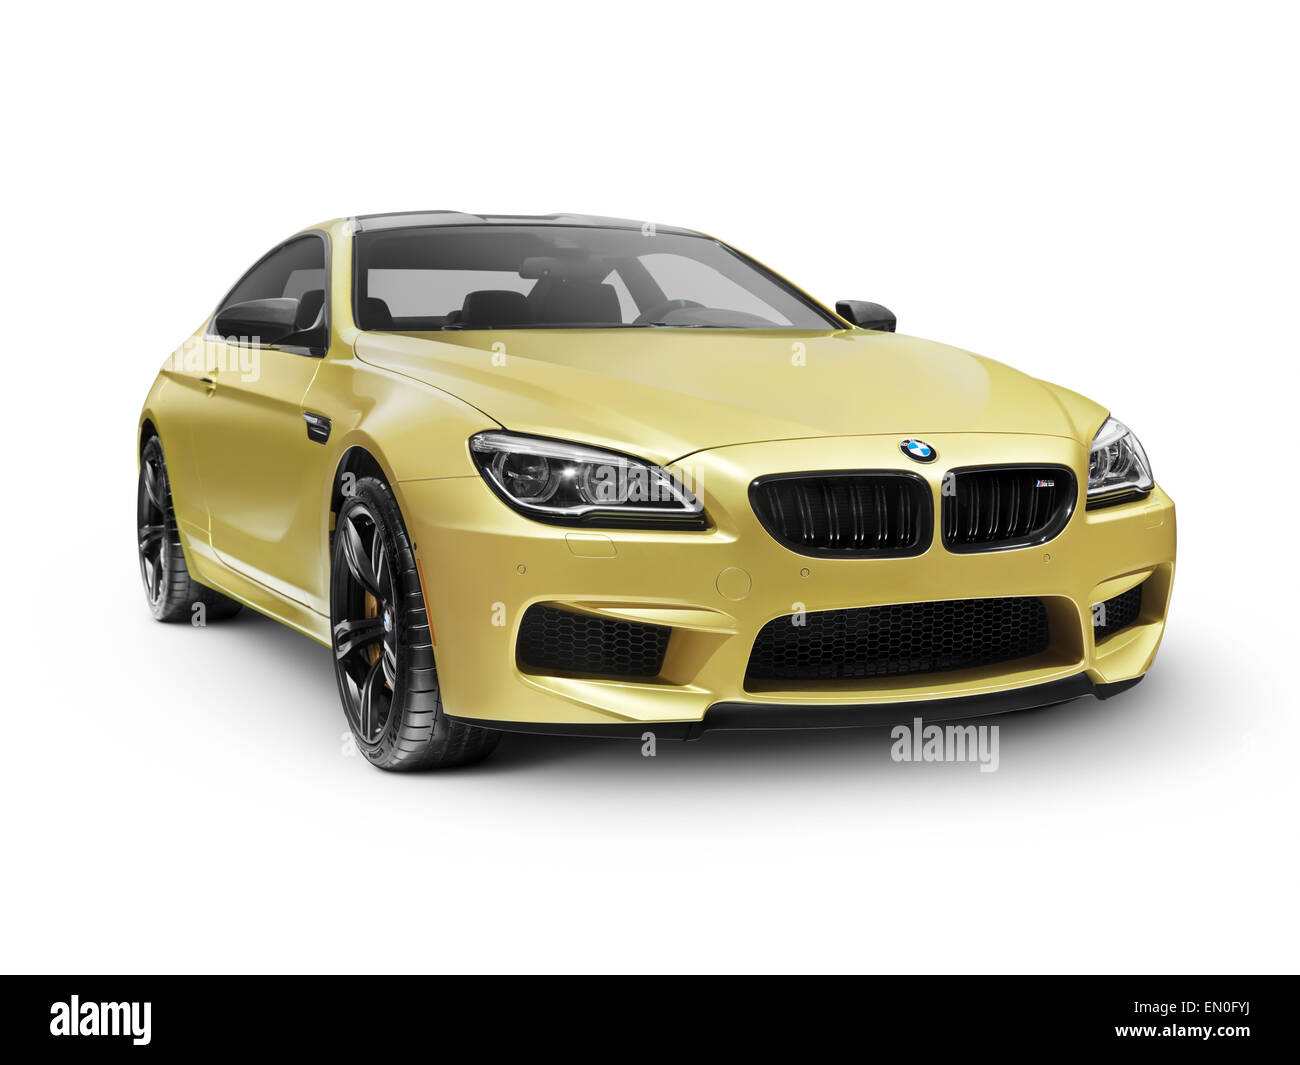 Gold 2015 BMW M6 Coupe luxury car isolated on white background with clipping path - Stock Image